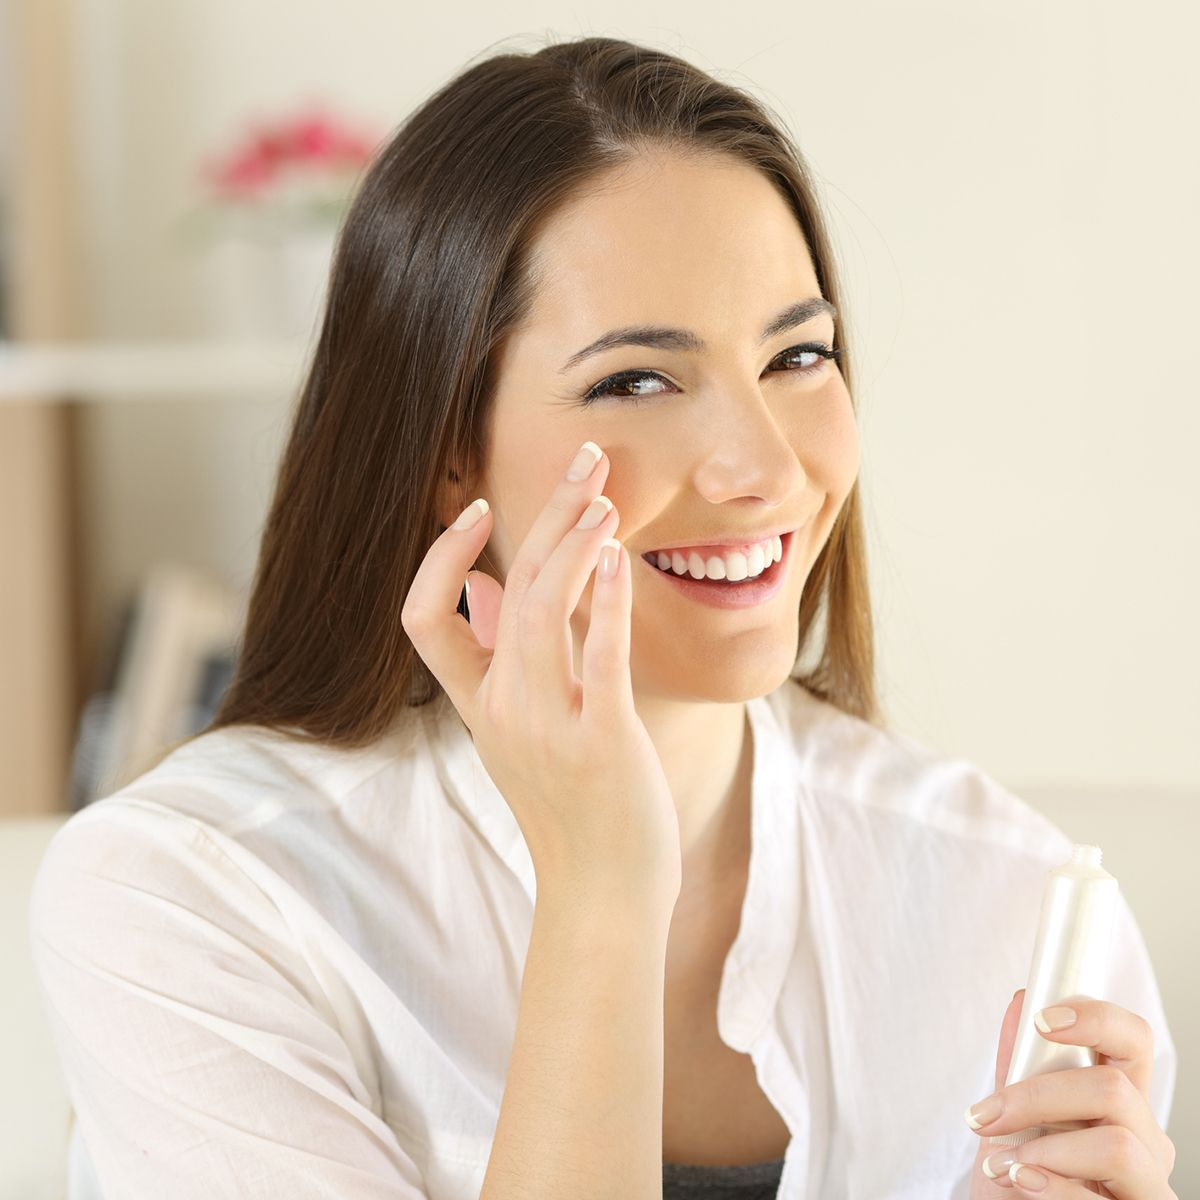 Woman applying moisturizer cream on the face